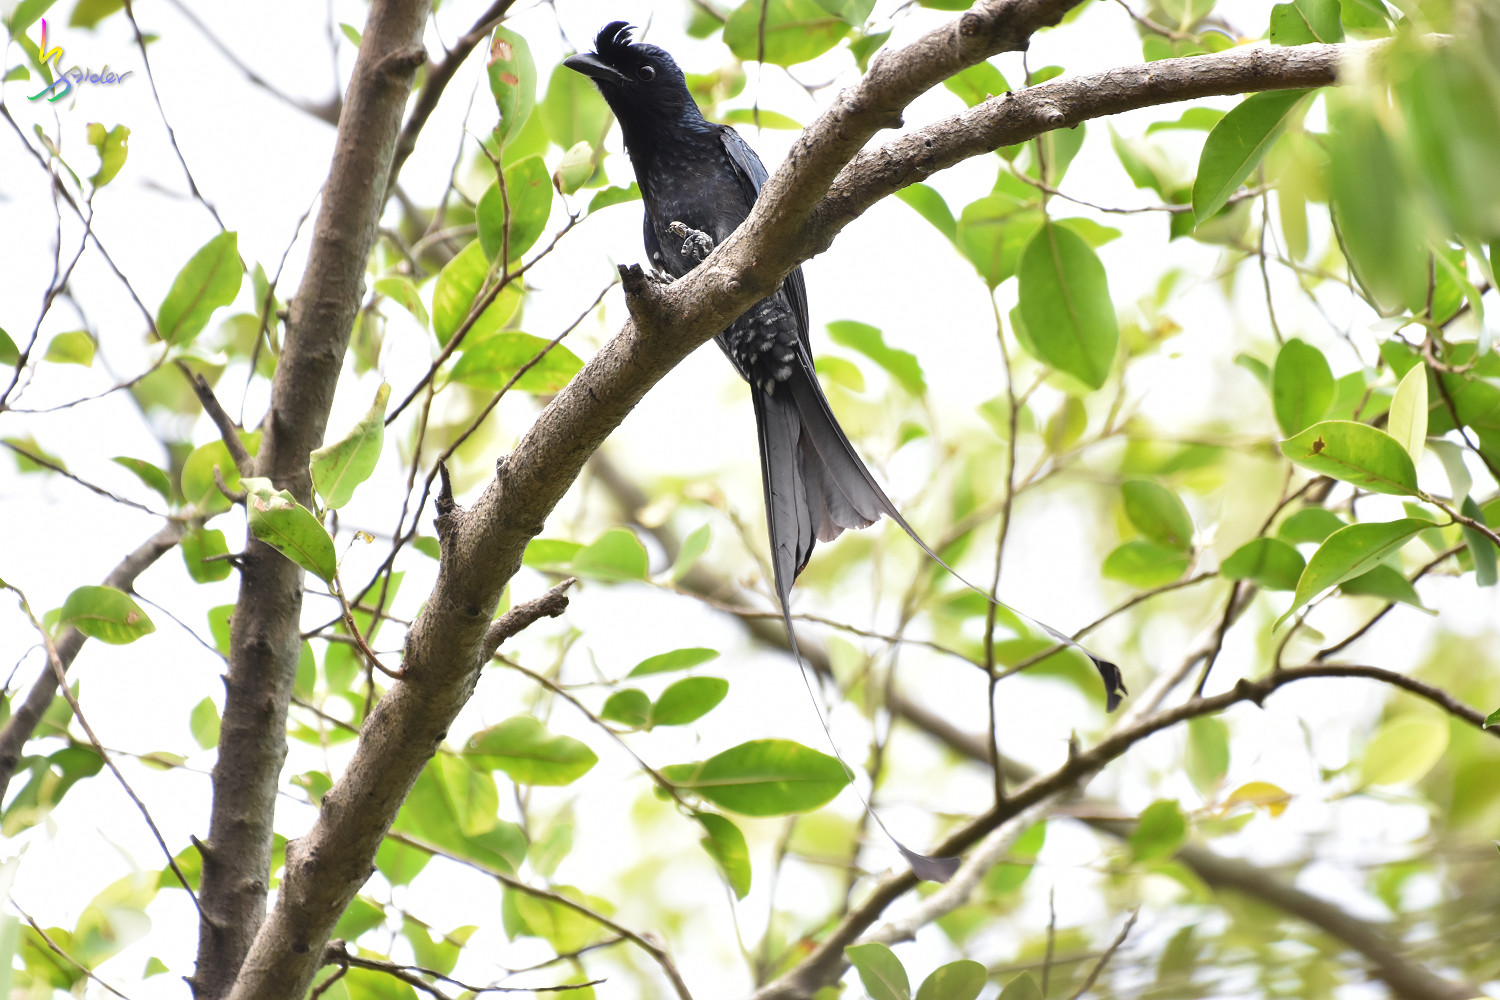 Greater_Racket-tailed_Drongo_1320